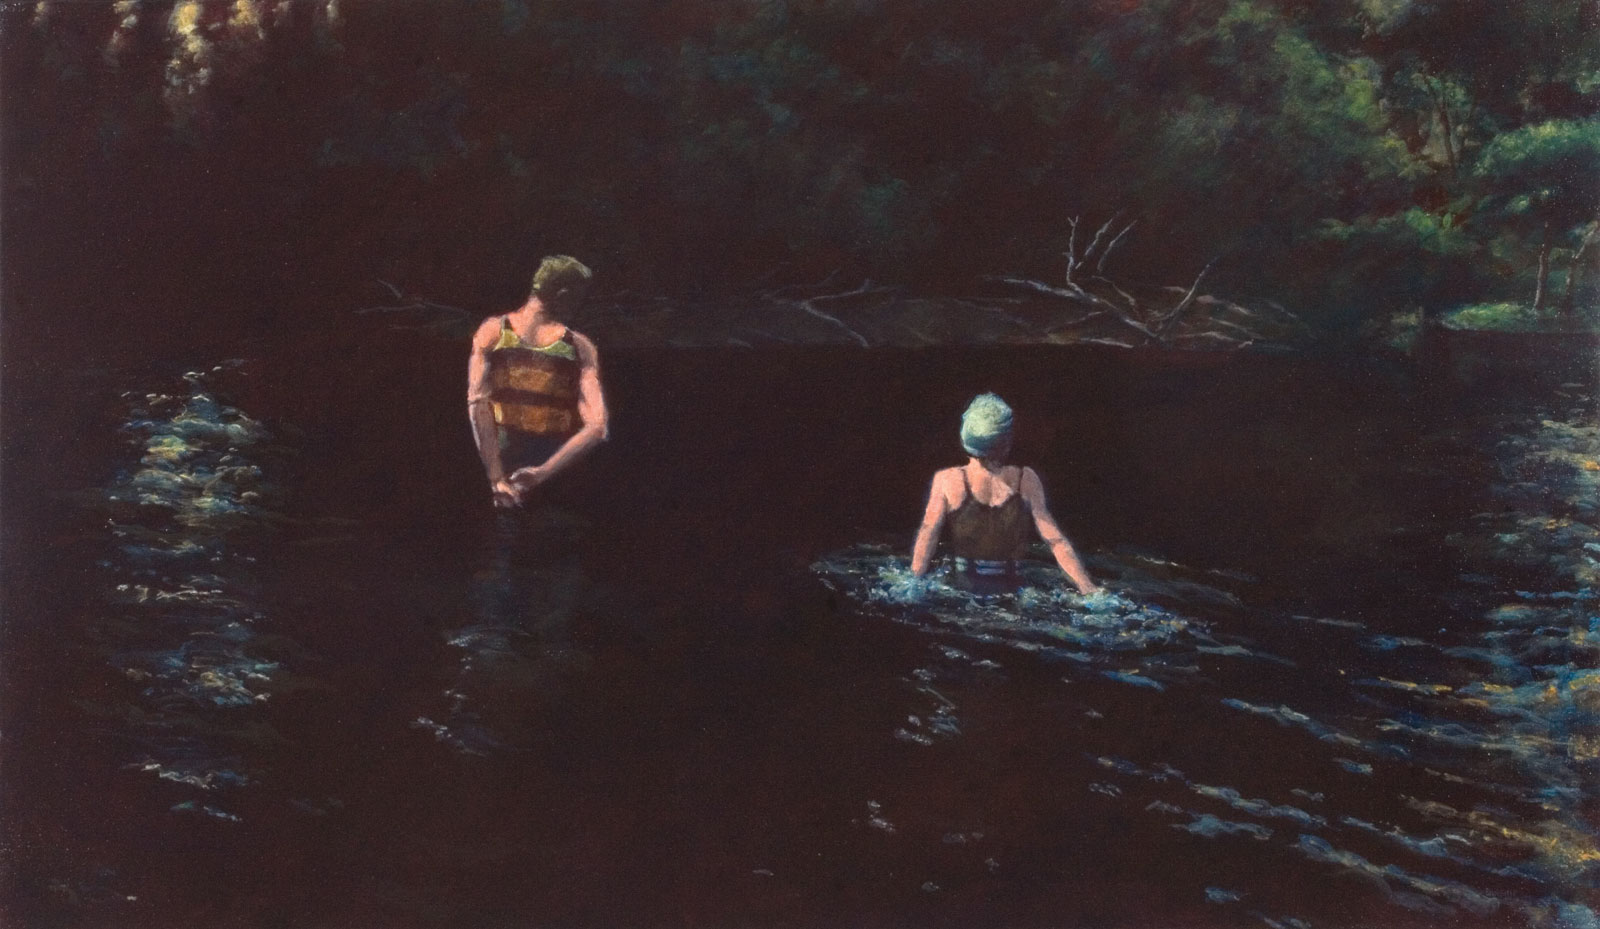 <i>Dark Water (Two Figures)</i> (2011), 28˝× 48˝, acrylic on canvas